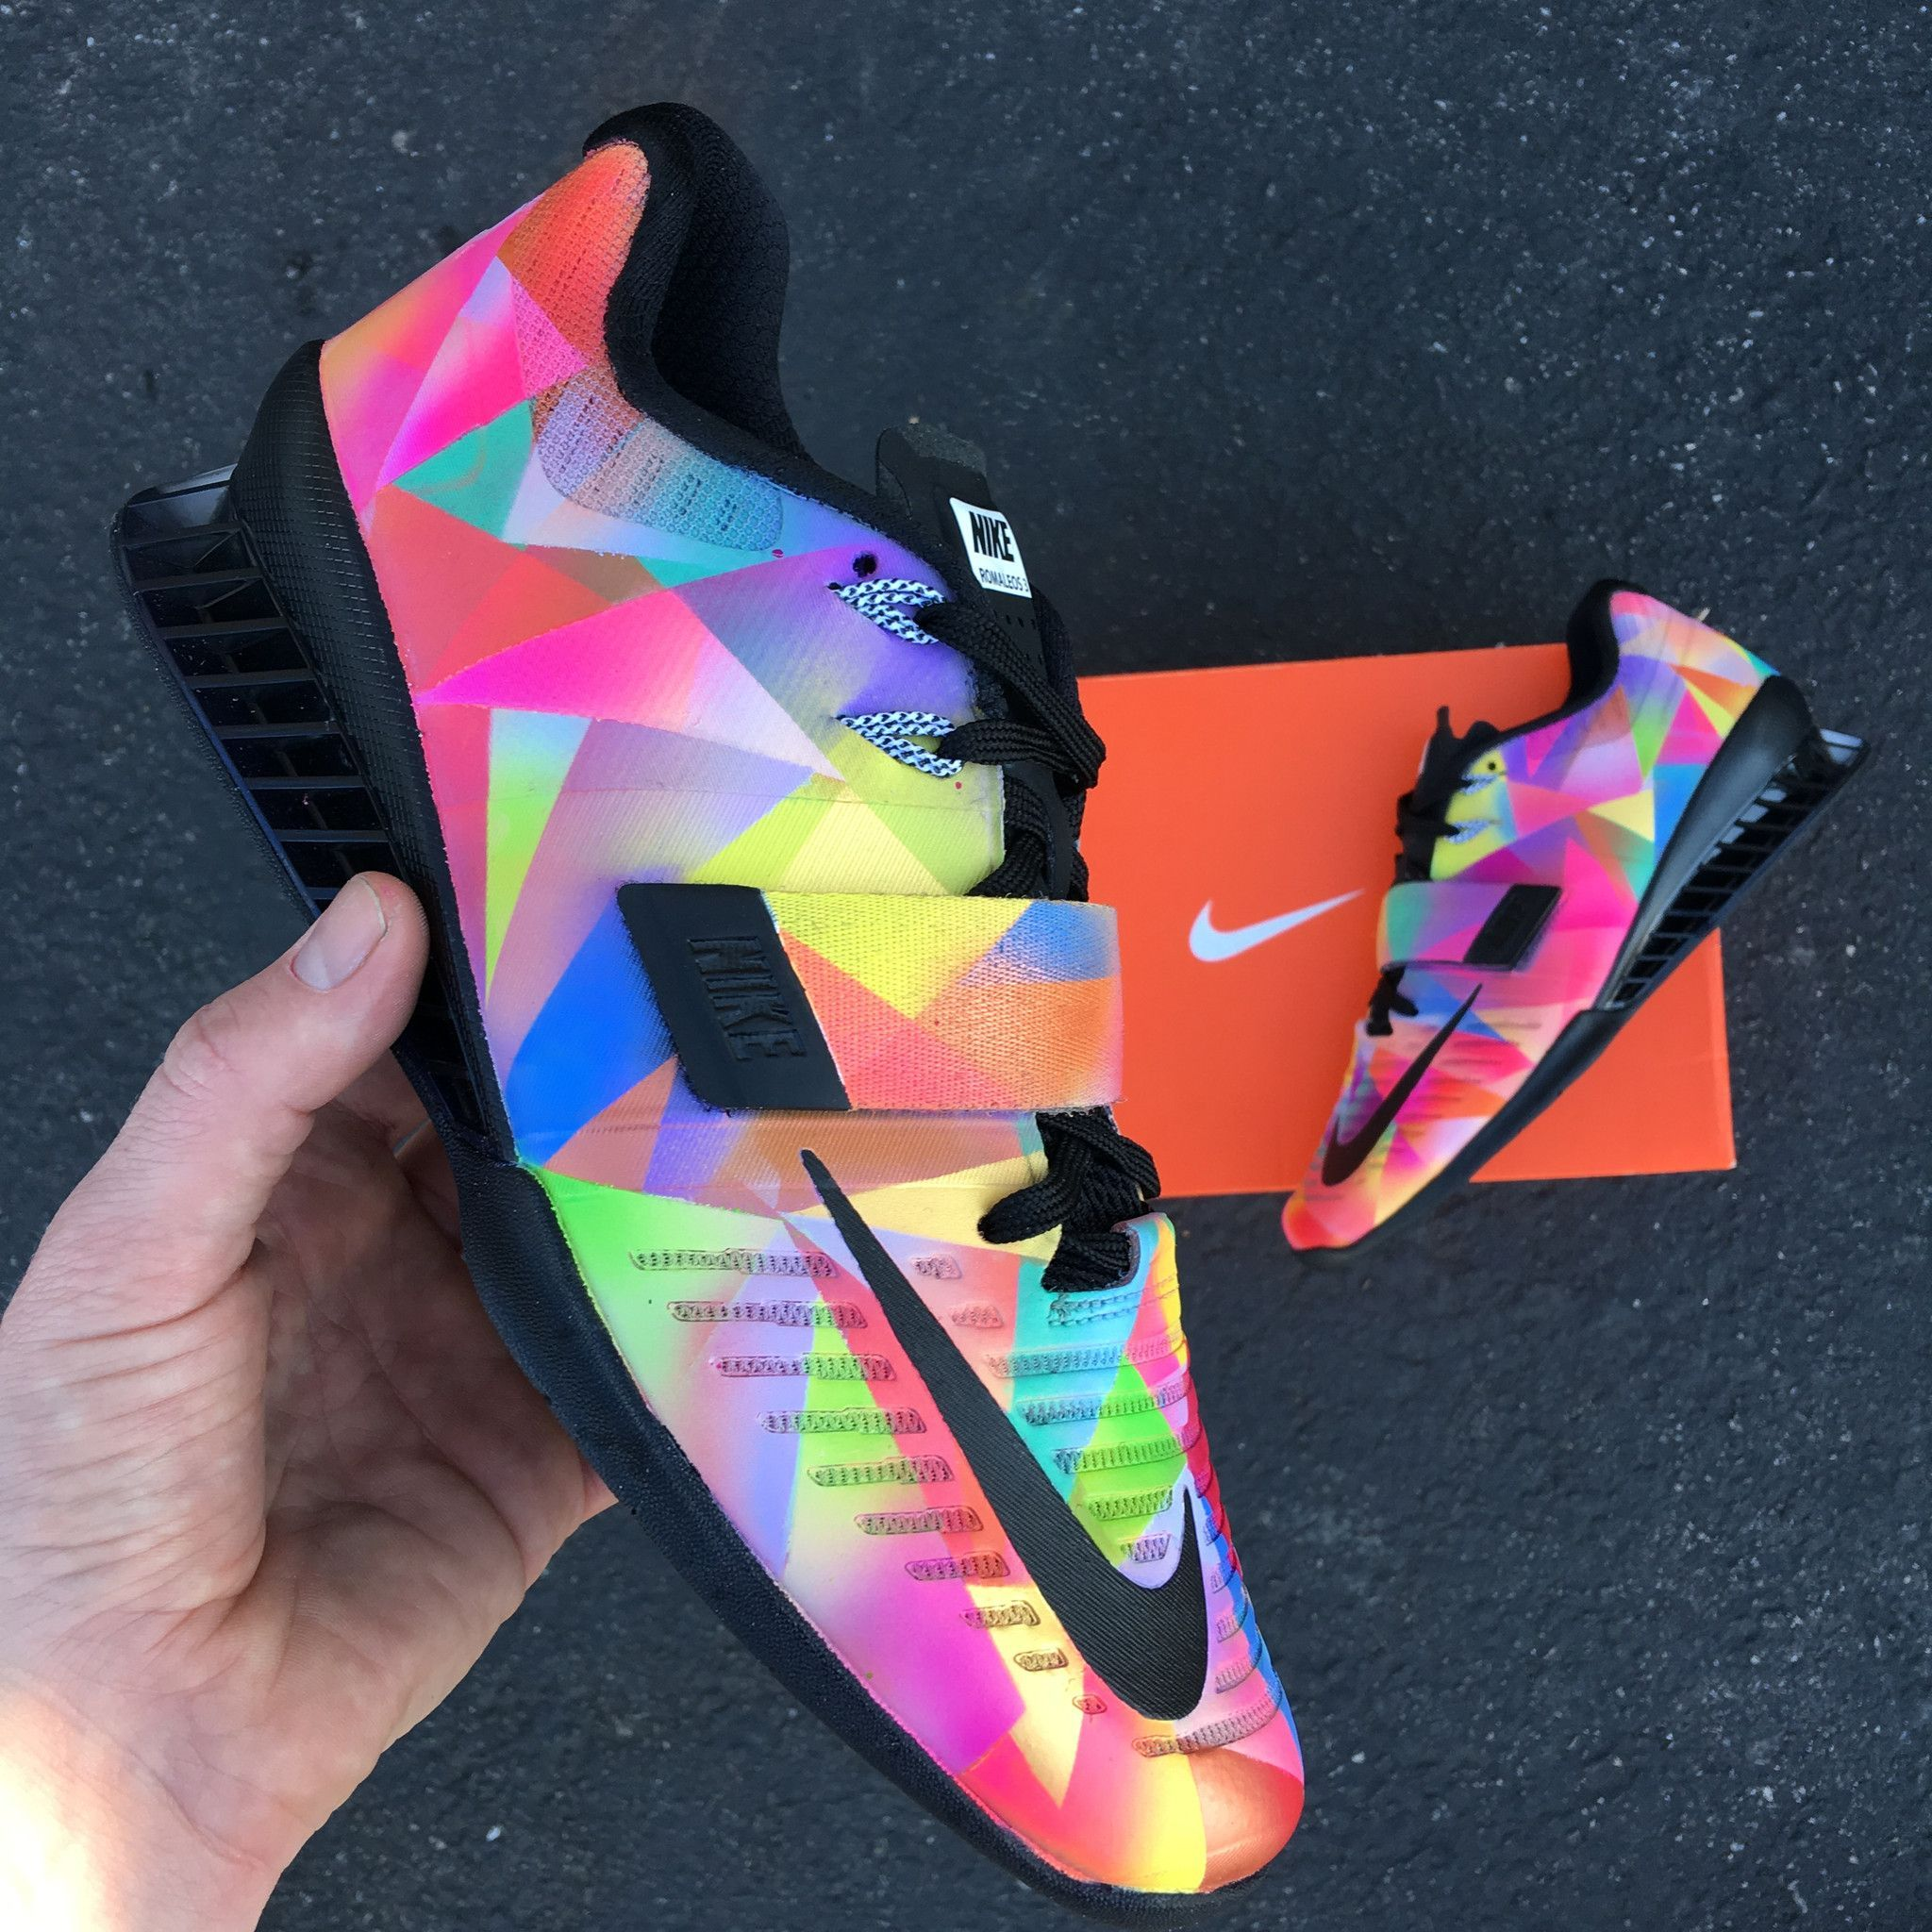 964862304e6 Nike Romaleos 3  Prism  Custom Painted Weightlifting Shoes